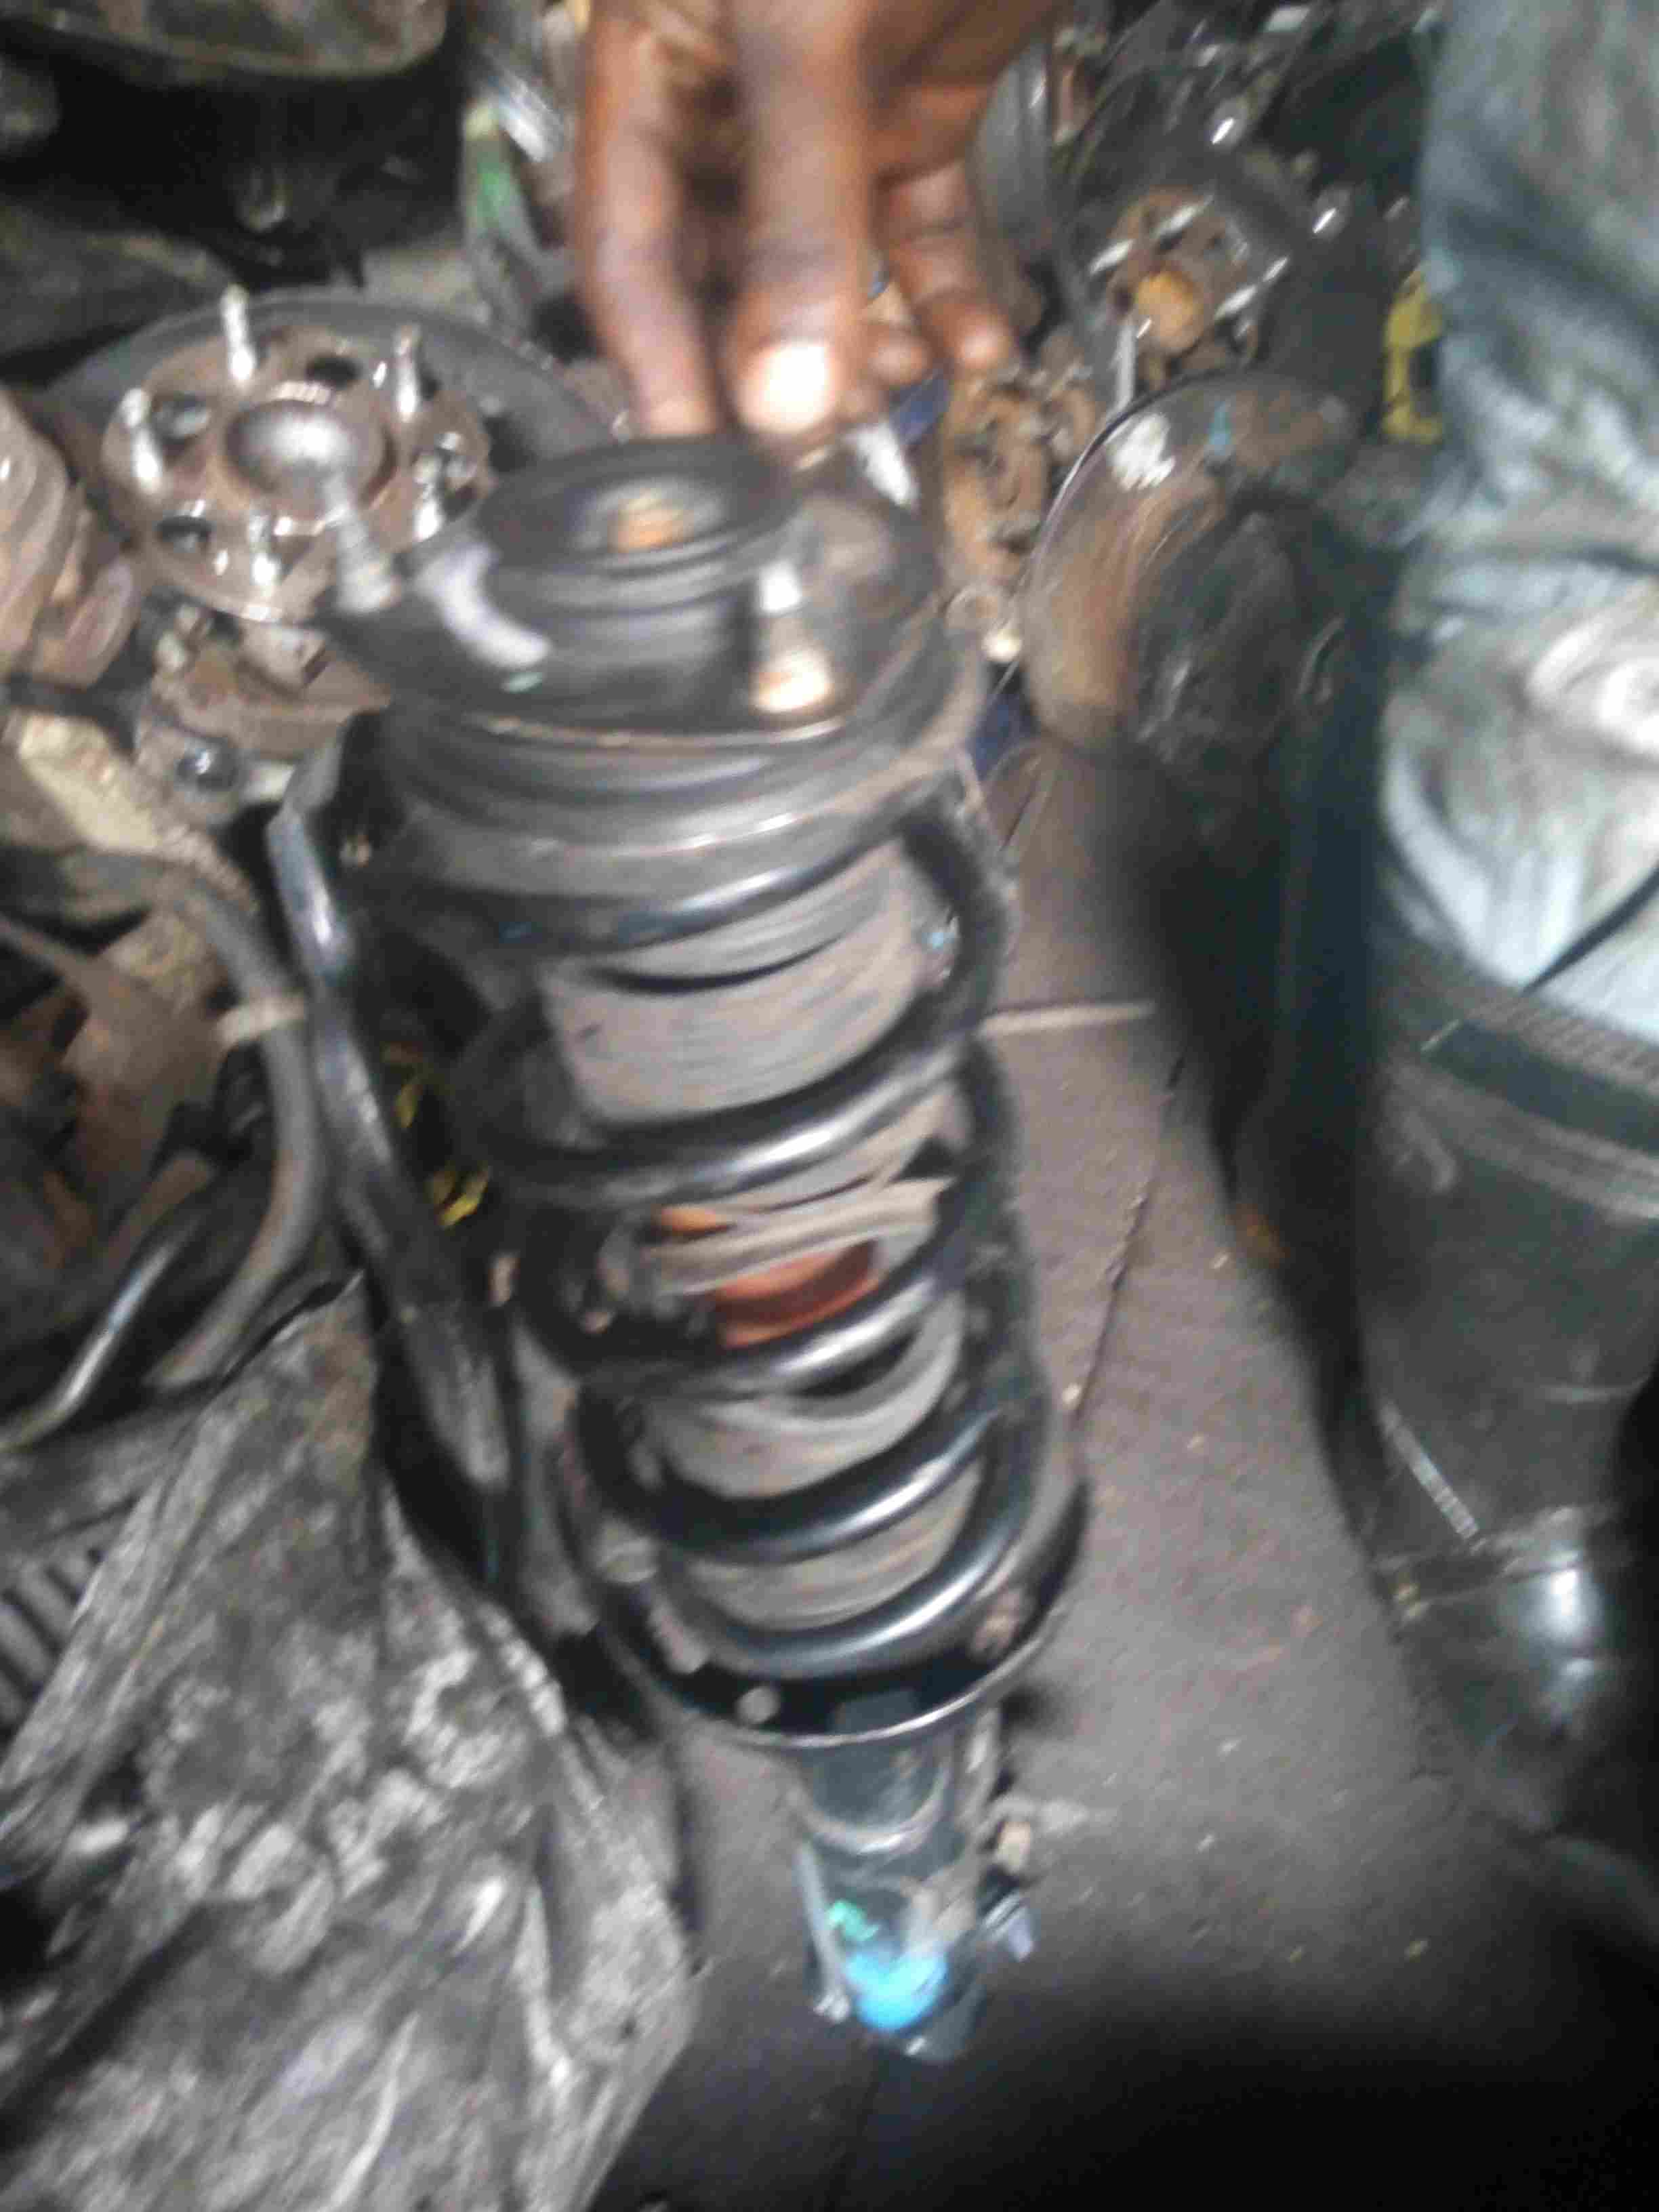 fairly used belgium front shock absorber